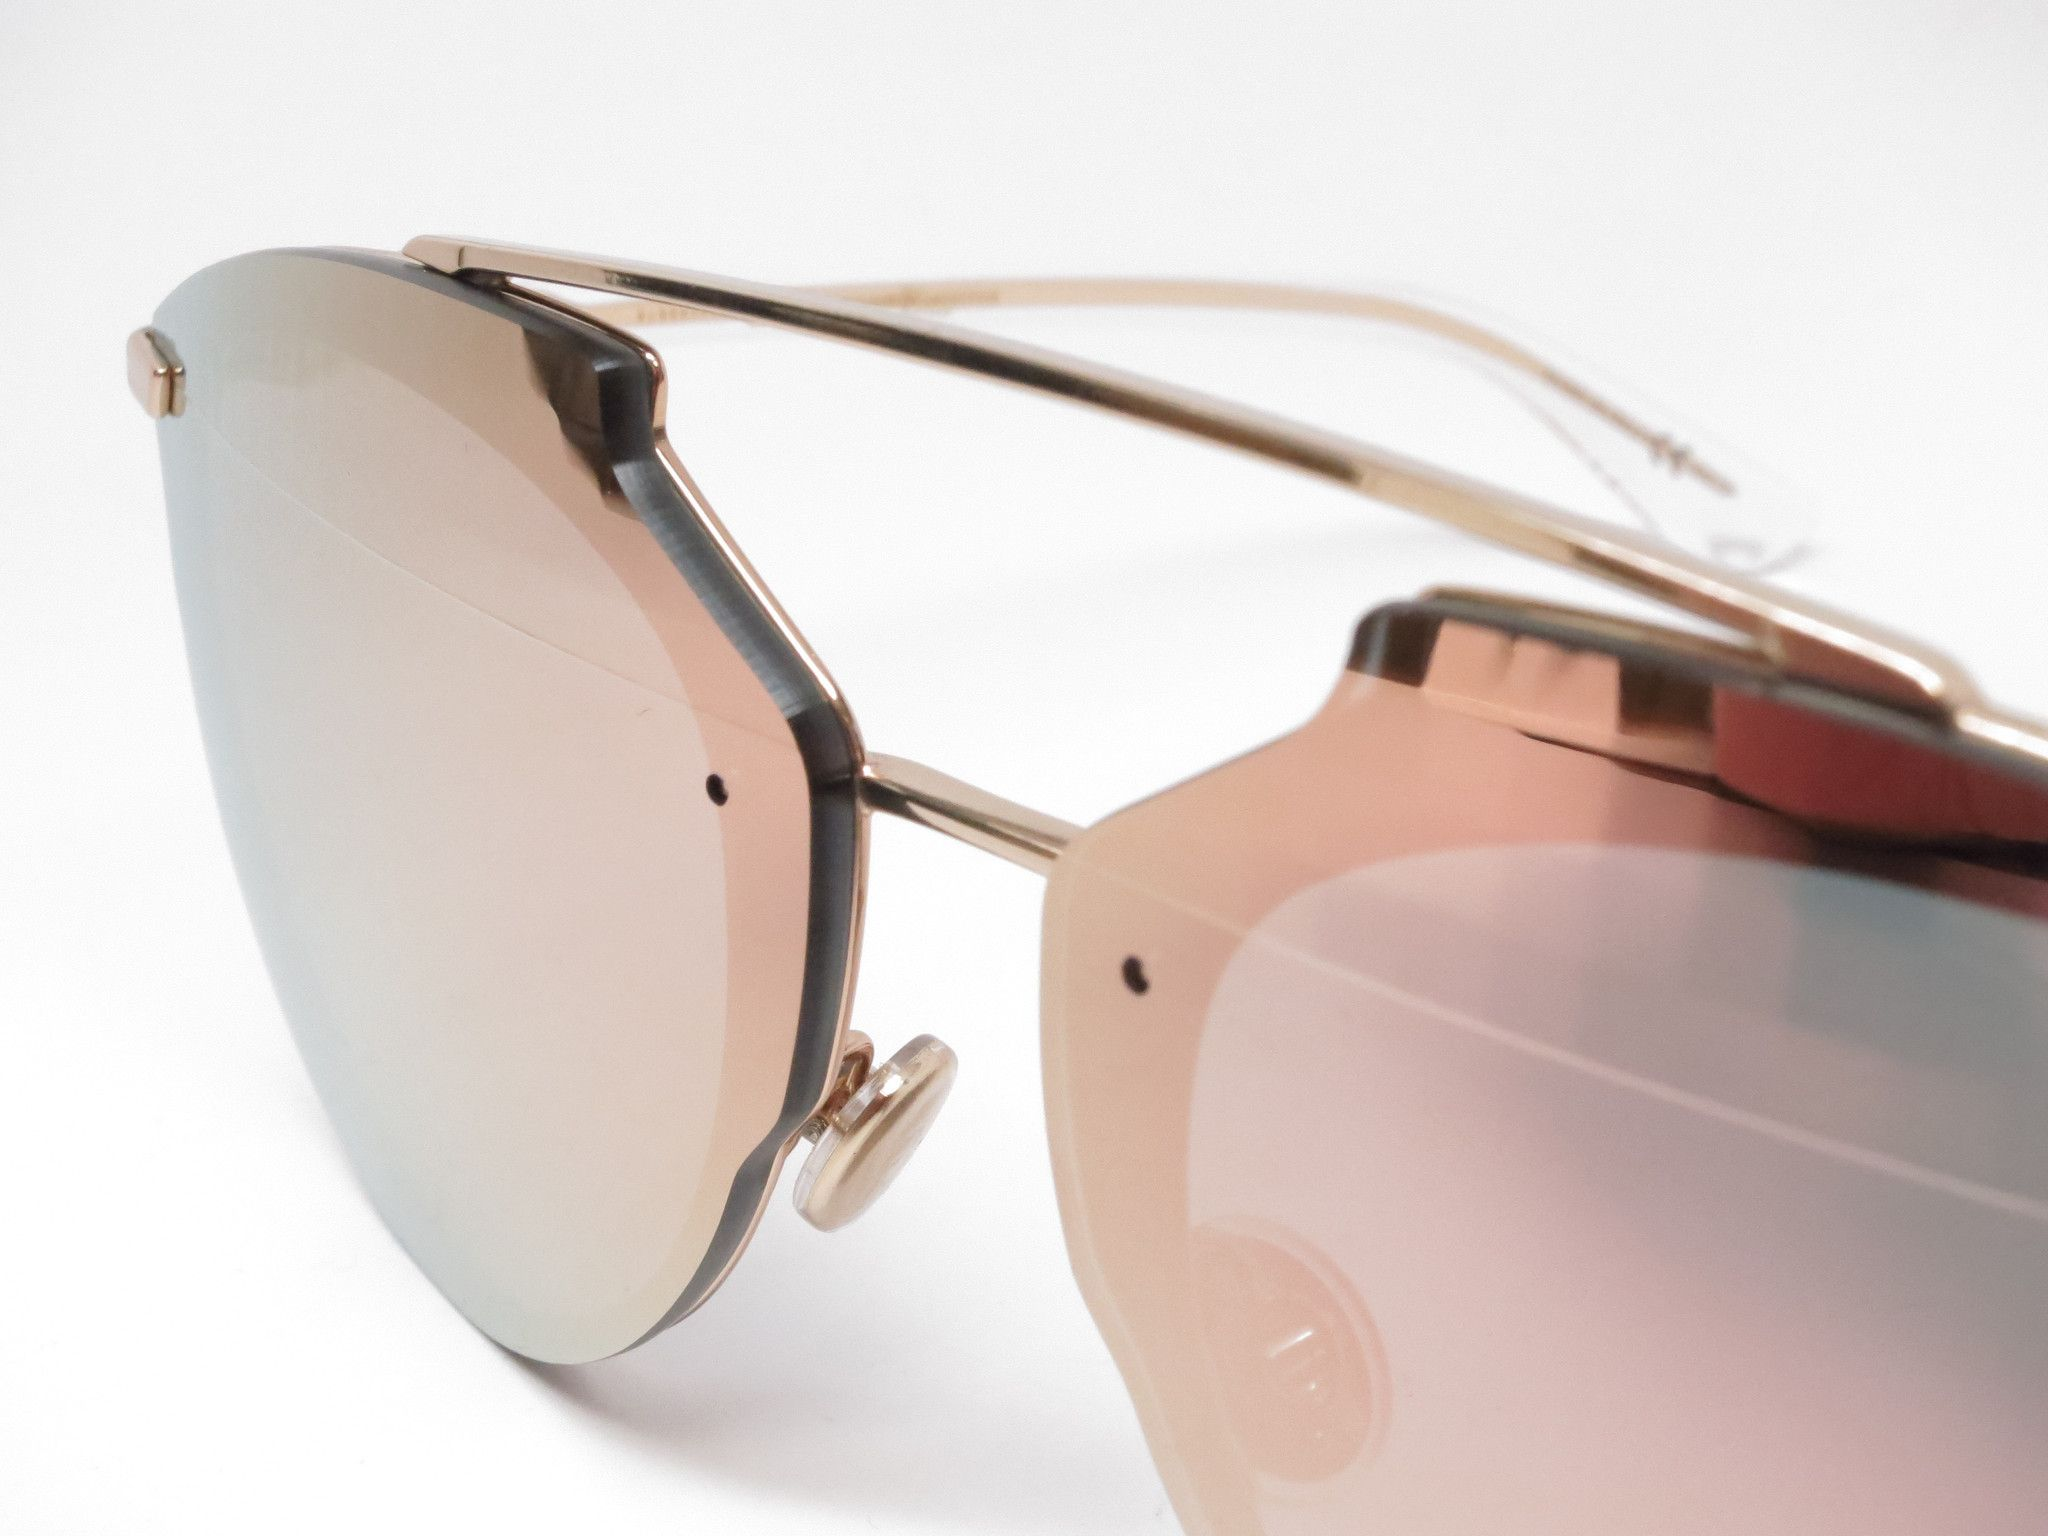 b4bb3b83a6 Product Details of Dior Reflected P Sunglasses Brand   Christion Dior Model  Name   Reflected P (P stands for Pixel